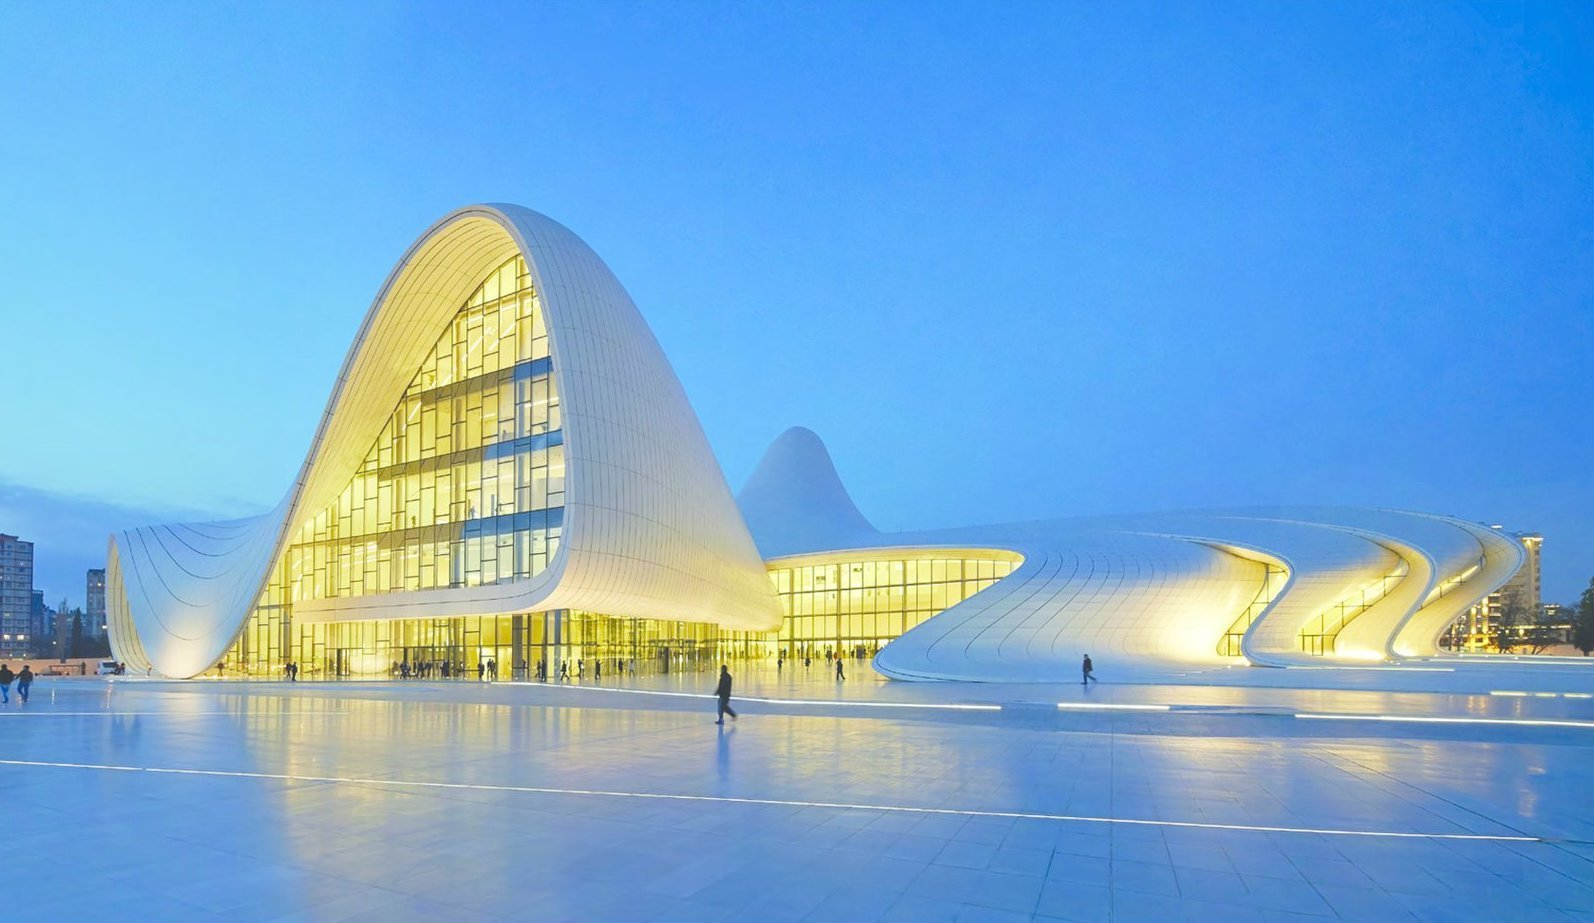 Photo 1 of 9 in Celebrate the Late Zaha Hadid With a New Book That Highlights Her Unforgettable Work